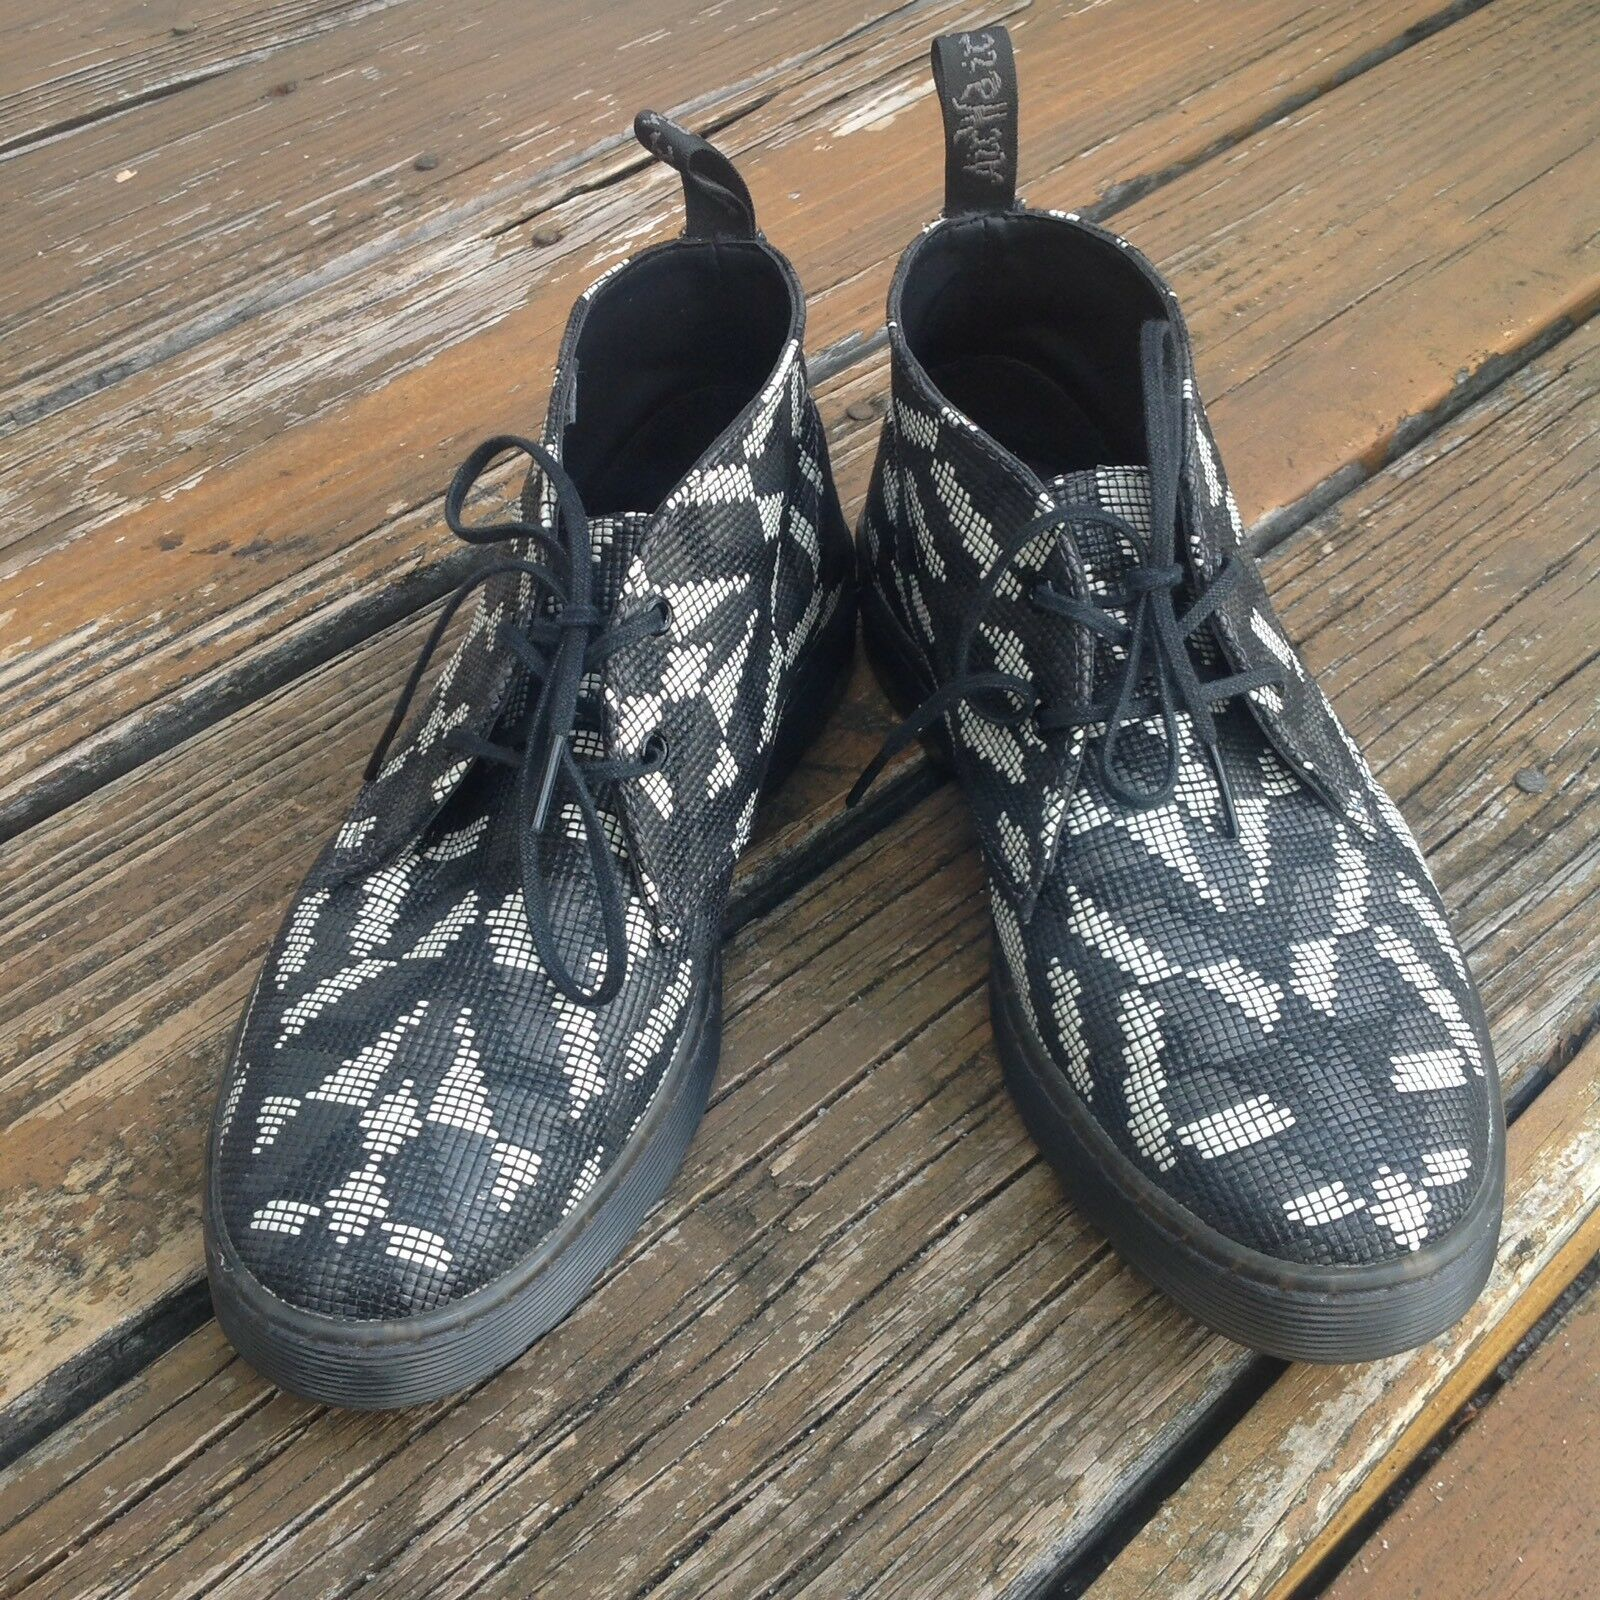 Dr Martens Docs Black Aztec Beaded Hackney Boots Womens 7 Airwair Shoes